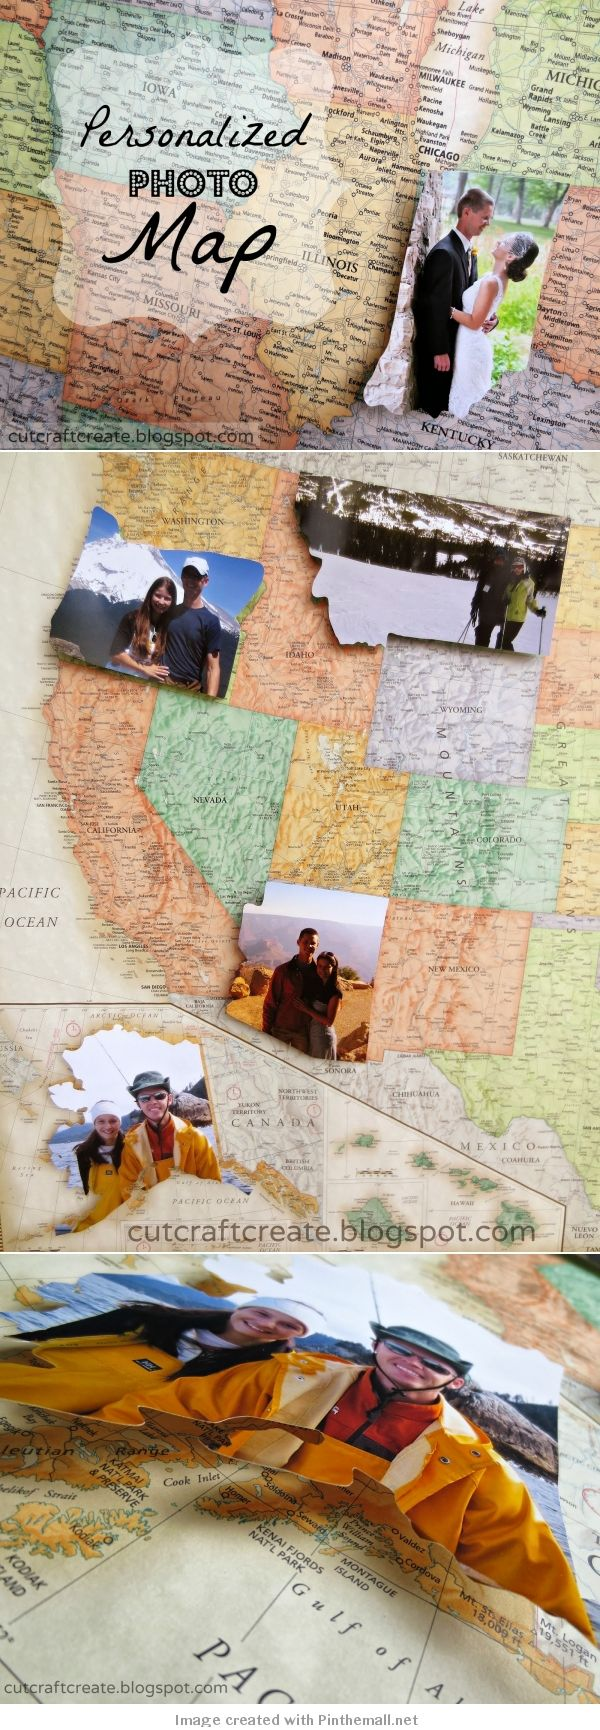 DIY Photo Travel Map to Commemorate All the Places You've Traveled to. Very Awesome.